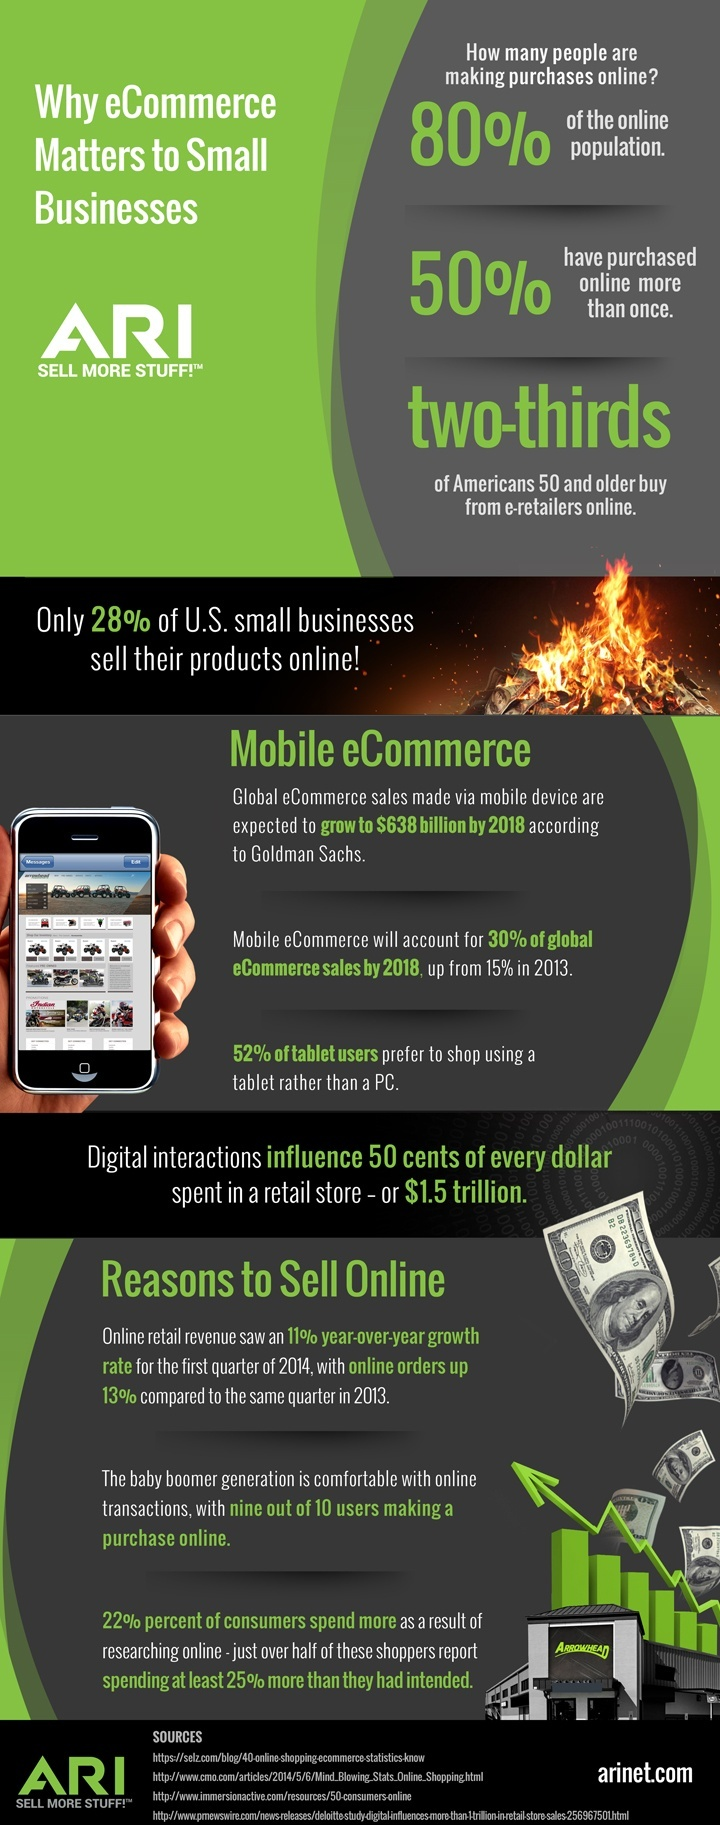 Why eCommerce Matters to Small Businesses infographic